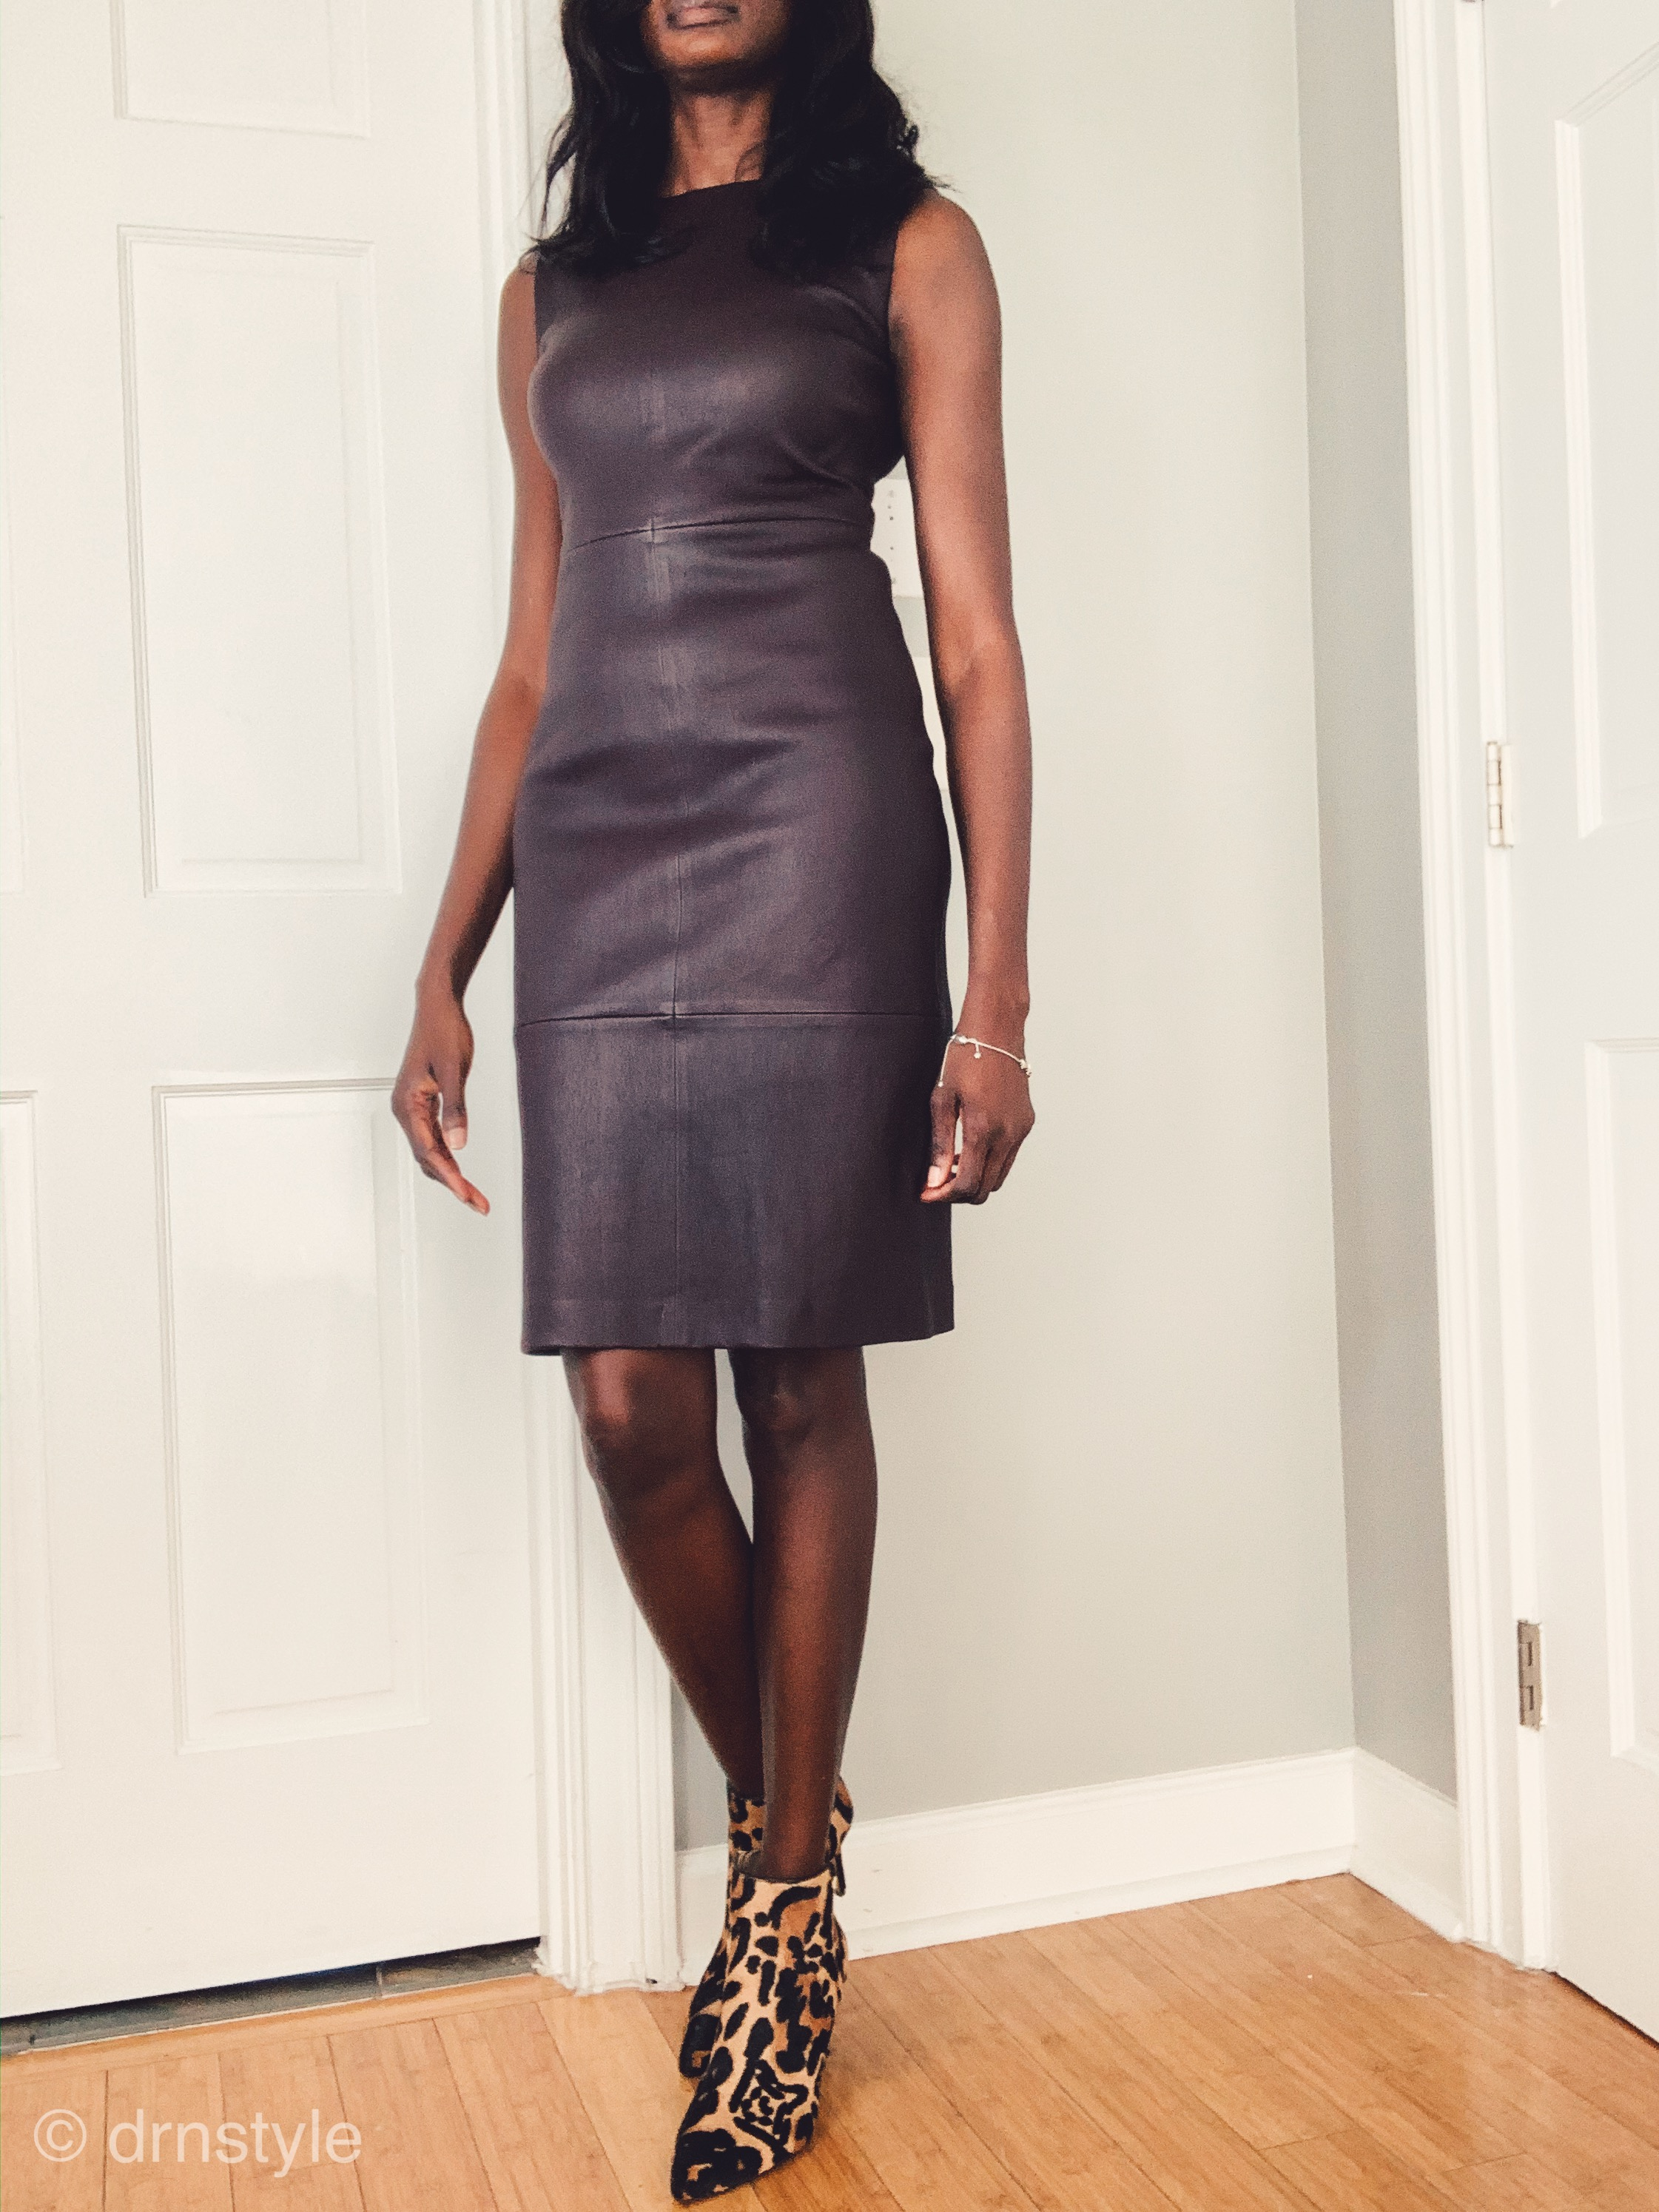 Leather dress by Vince in color dahlia wine, worn with leopard print, pointy toed ankle boots.